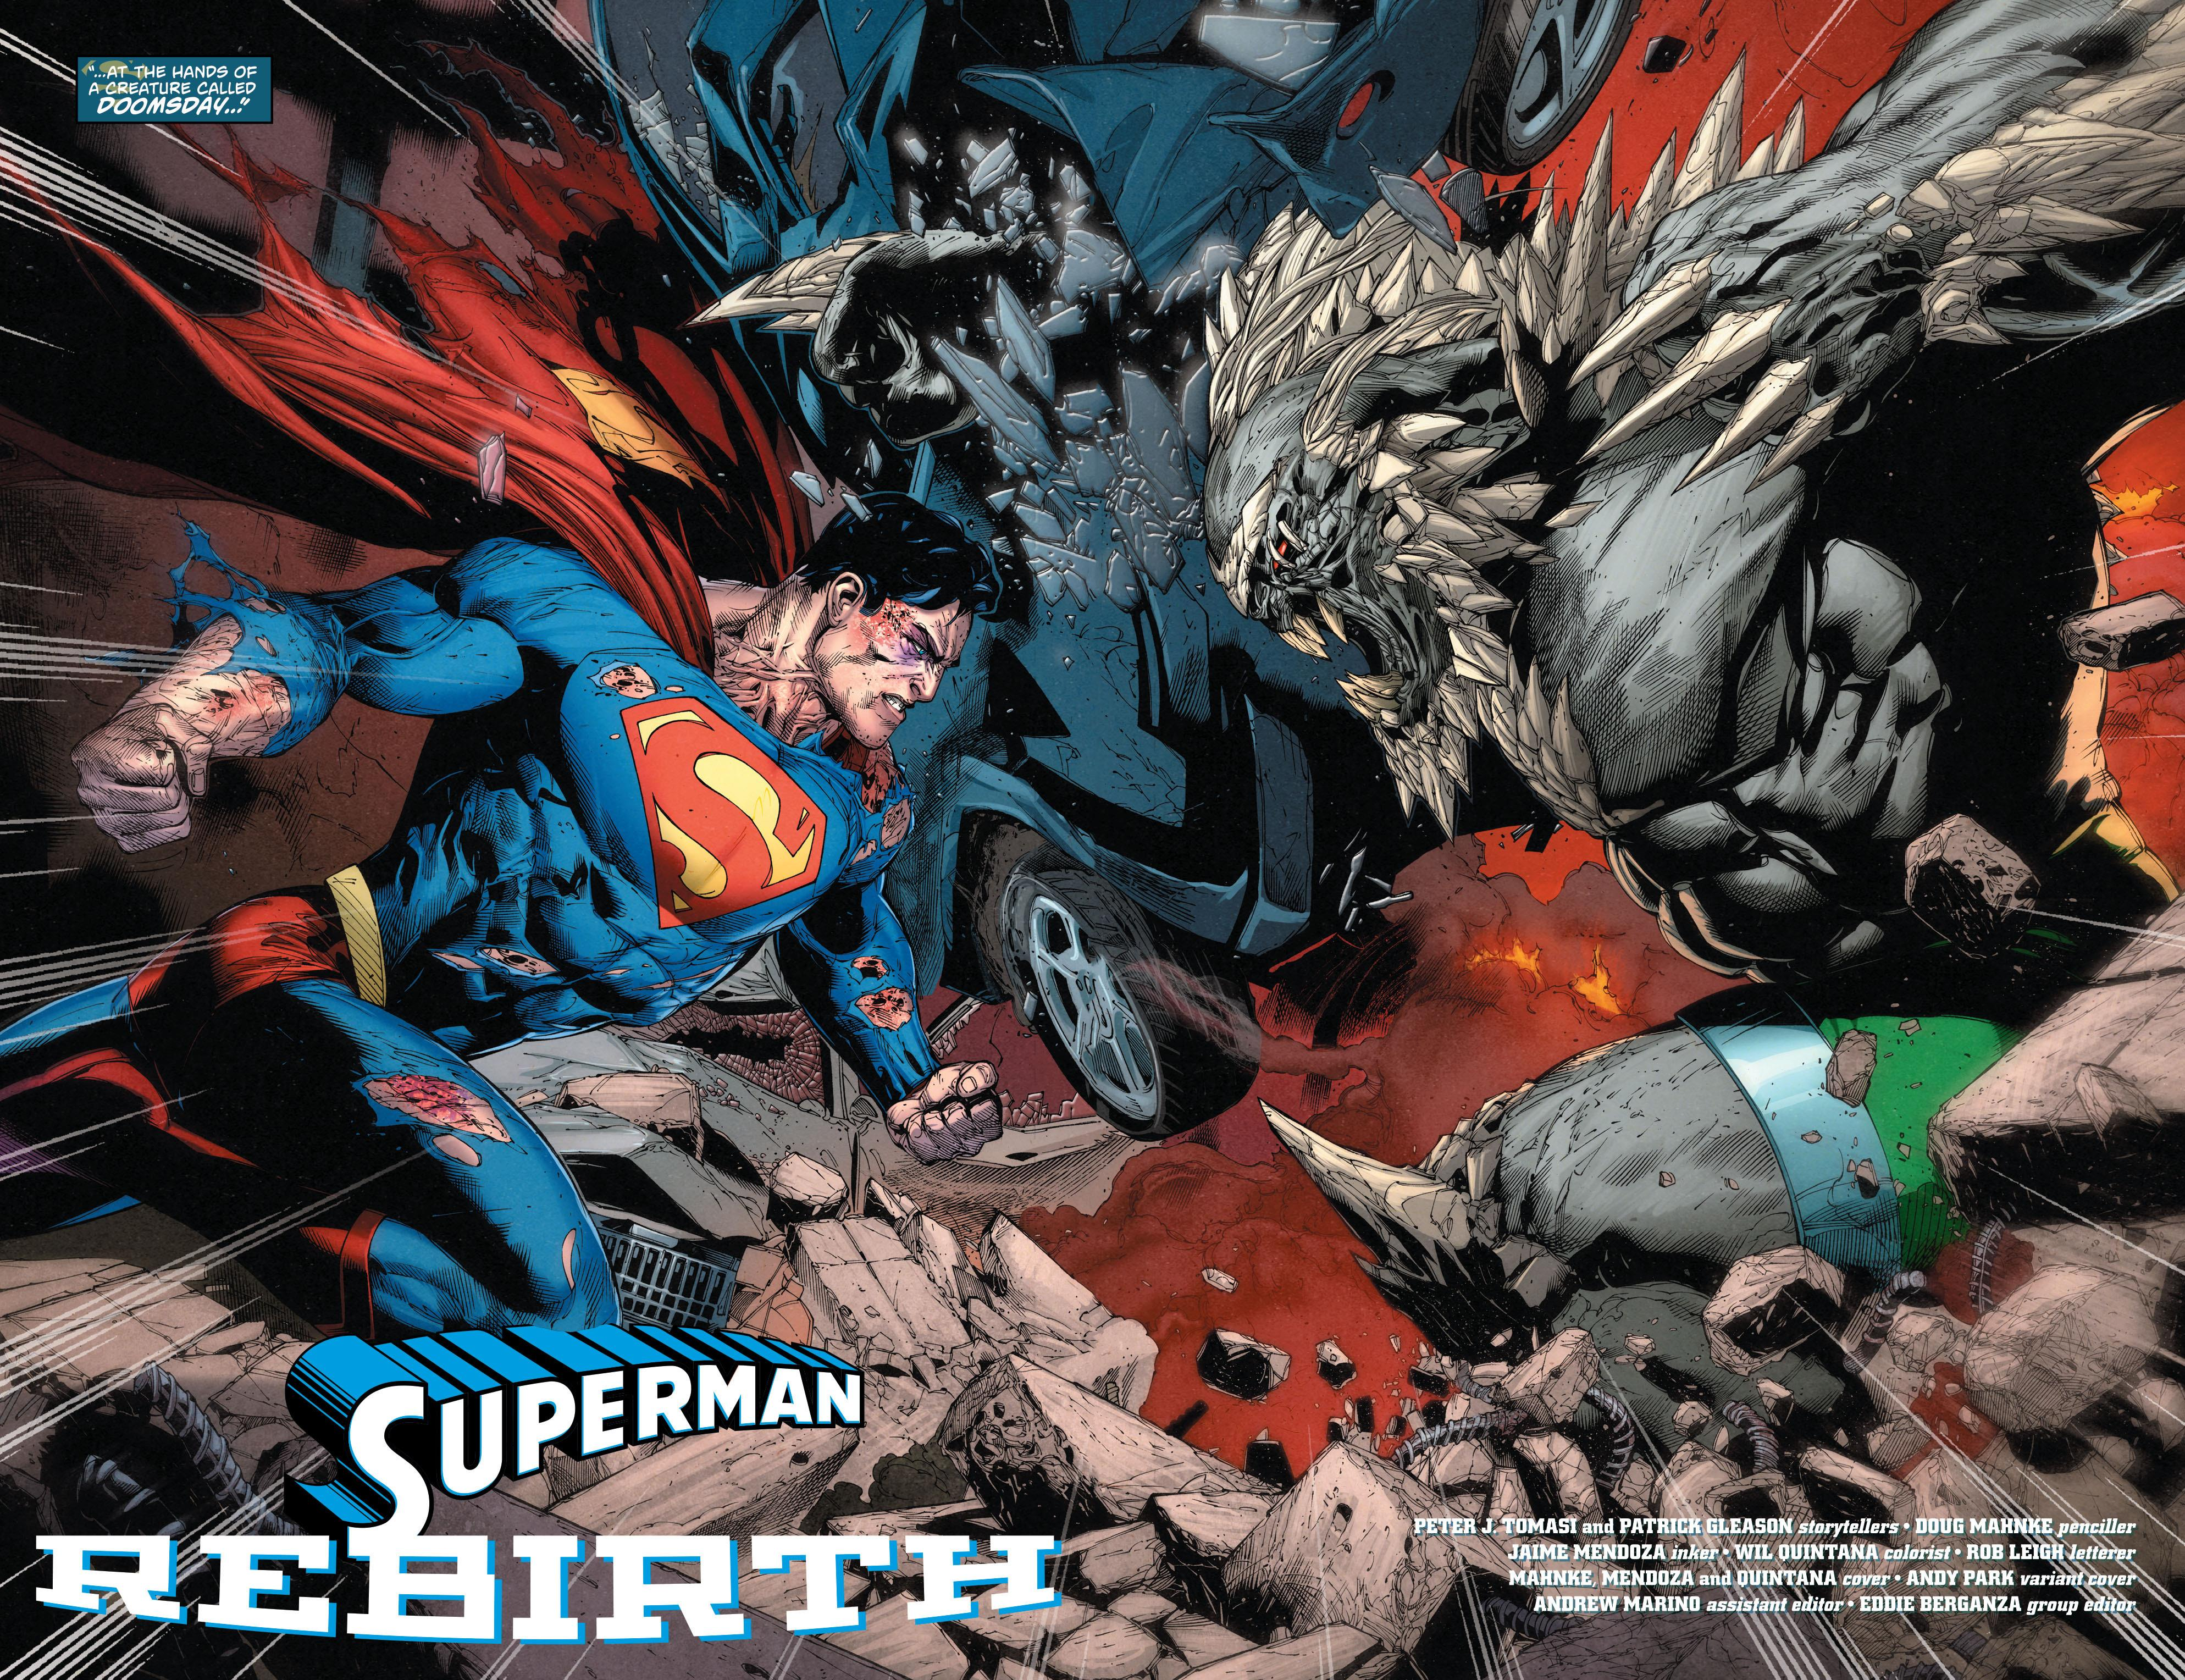 Superman Images Superman Vs Doomsday Hd Wallpaper And Background